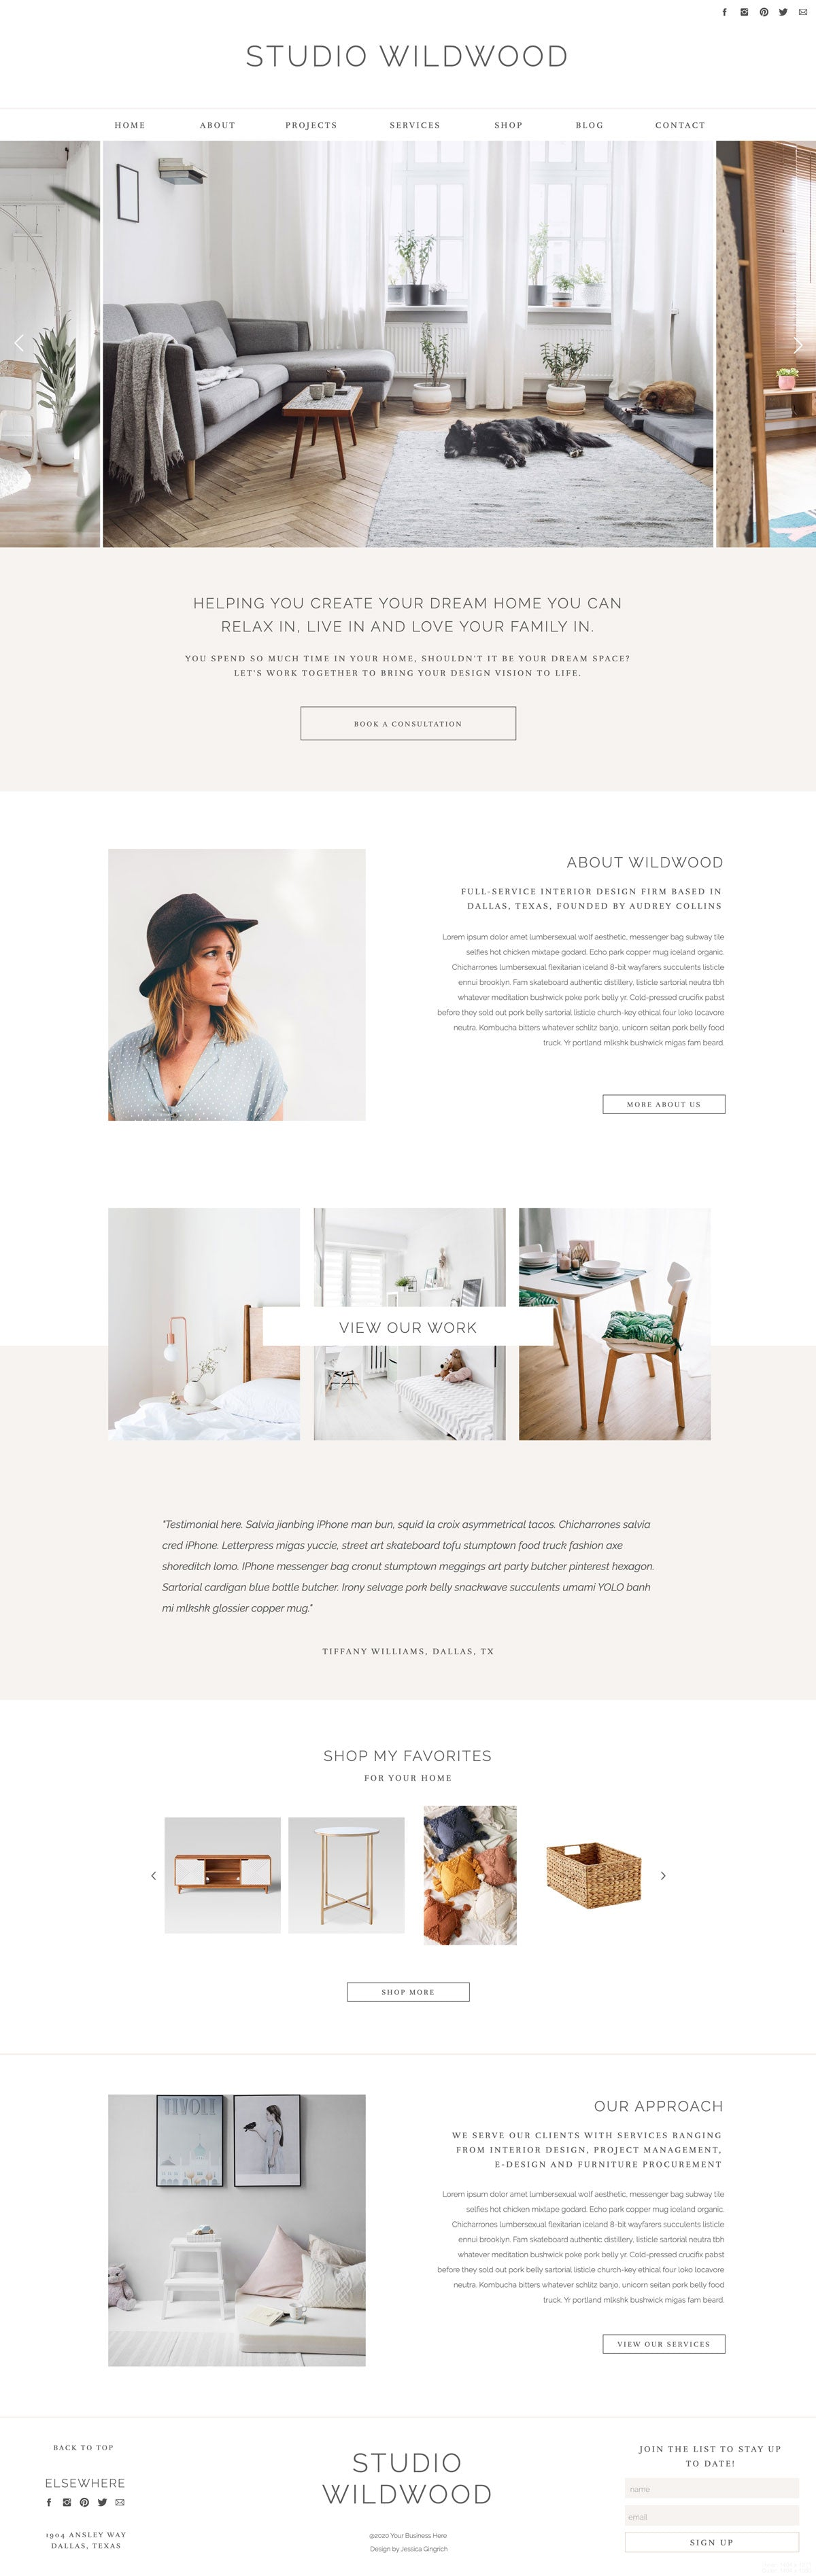 """Studio Wildwood"" Showit Template - jessica gingrich"